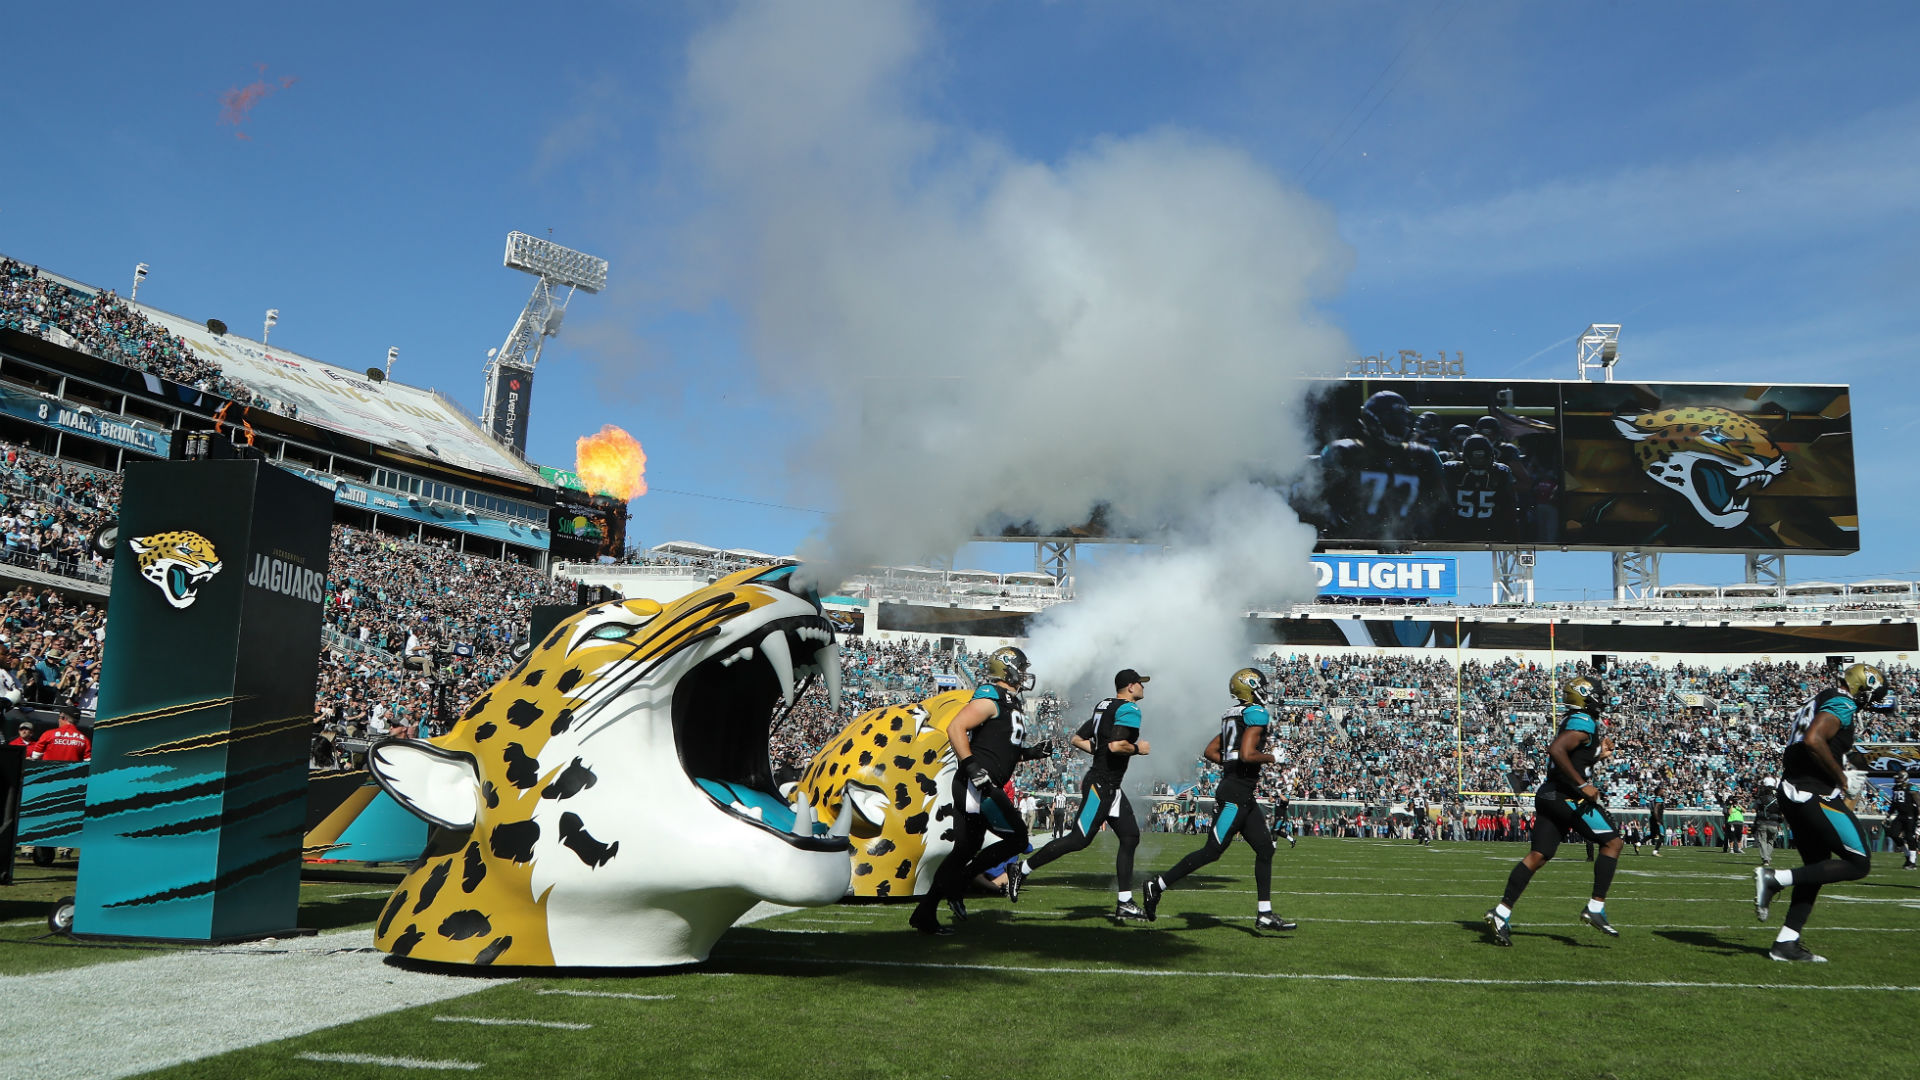 Jaguars Remove Tarps For Extra Playoff Seating; Tickets Sell Out In Minutes  | NFL | Sporting News